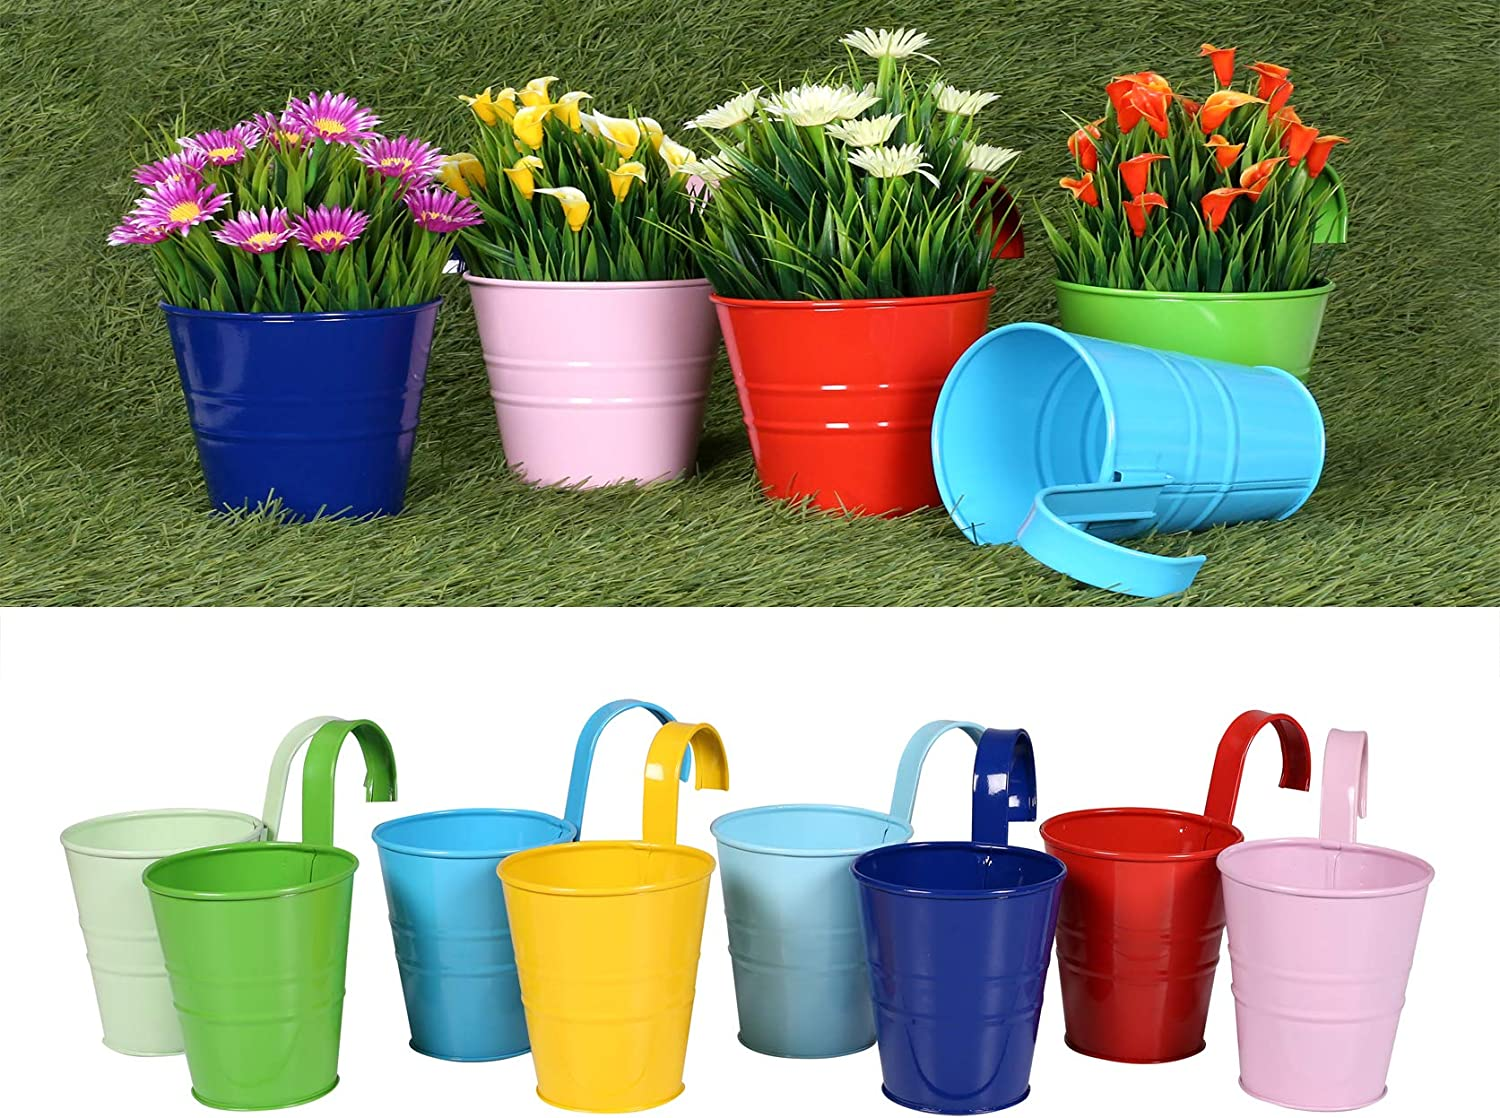 Hanging Flower Pots with Detachable Hook, Balcony Planters Metal Bucket for Railing, Fence, Window, Patio, Garden (Multicolor) 8 pcs Flower Pots, Wall Hanging Planter Indoor/ Outdoor - 4 Inches.